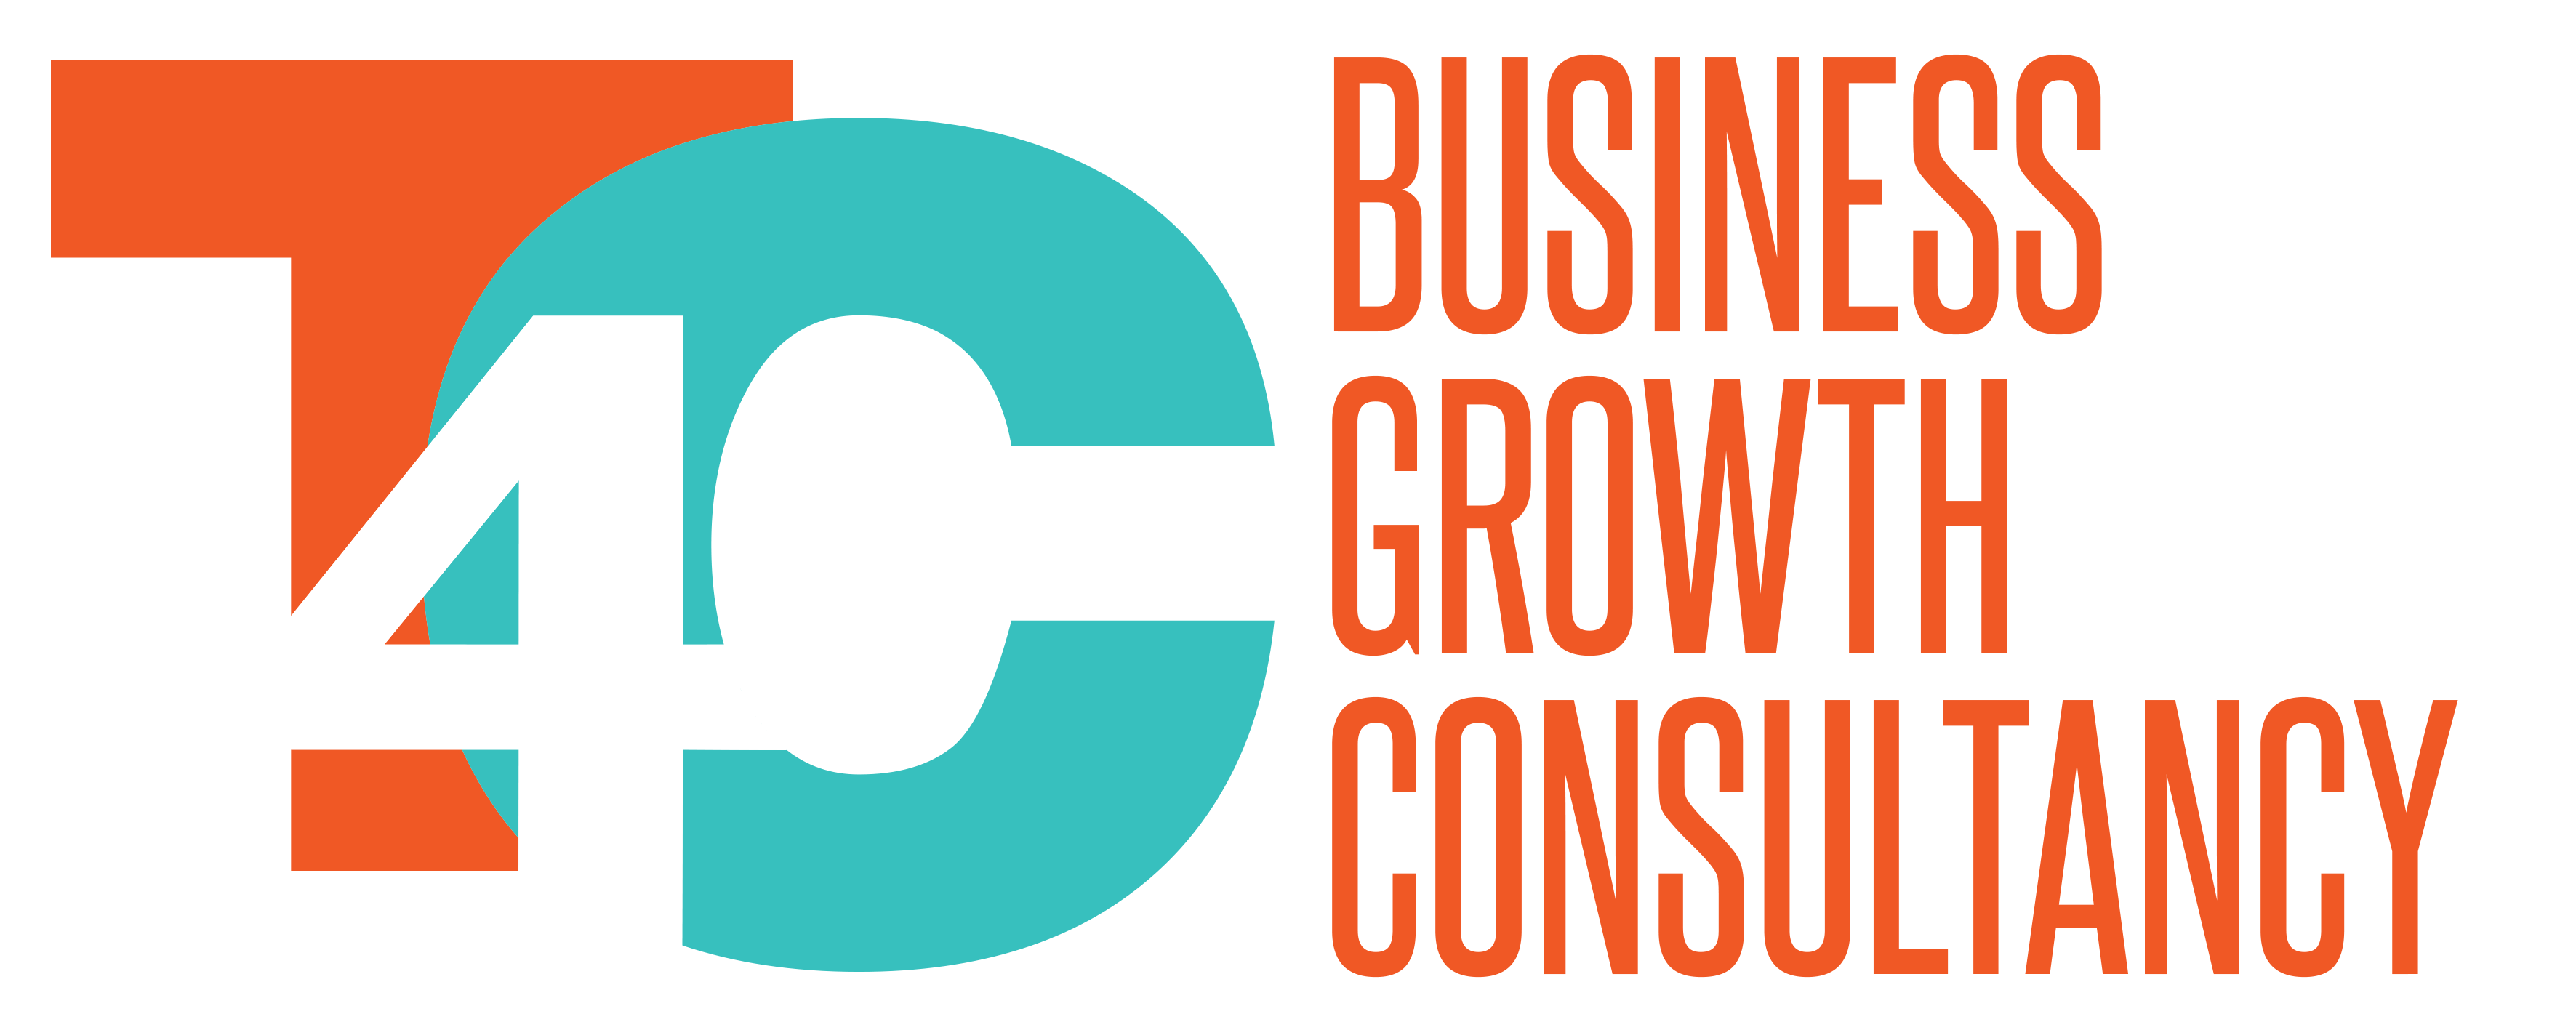 T4C Business Growth Consultancy